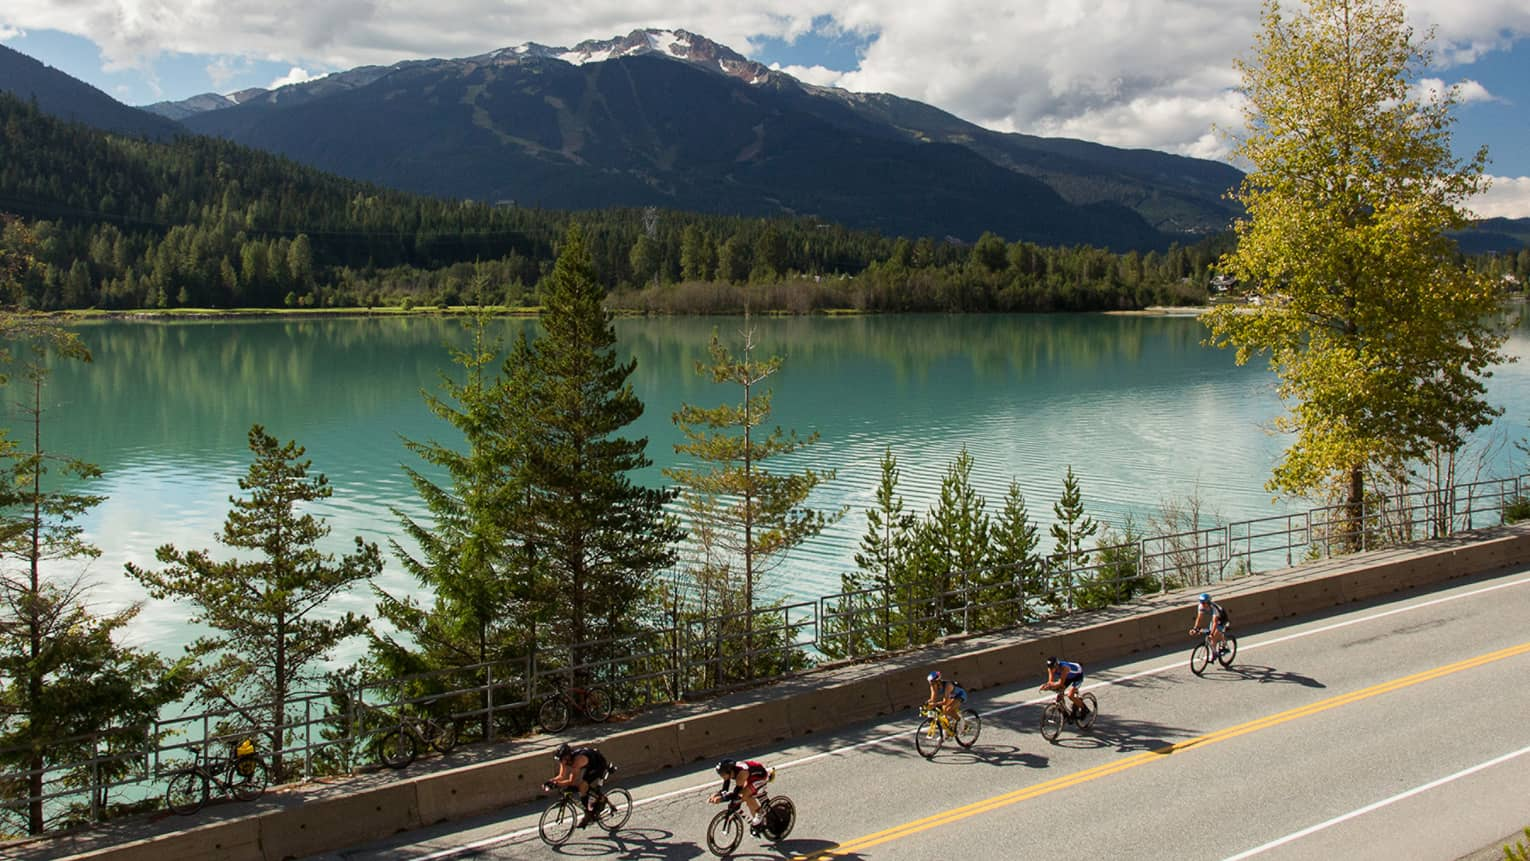 Cyclists bike down road past trees, blue glacier lake under mountains